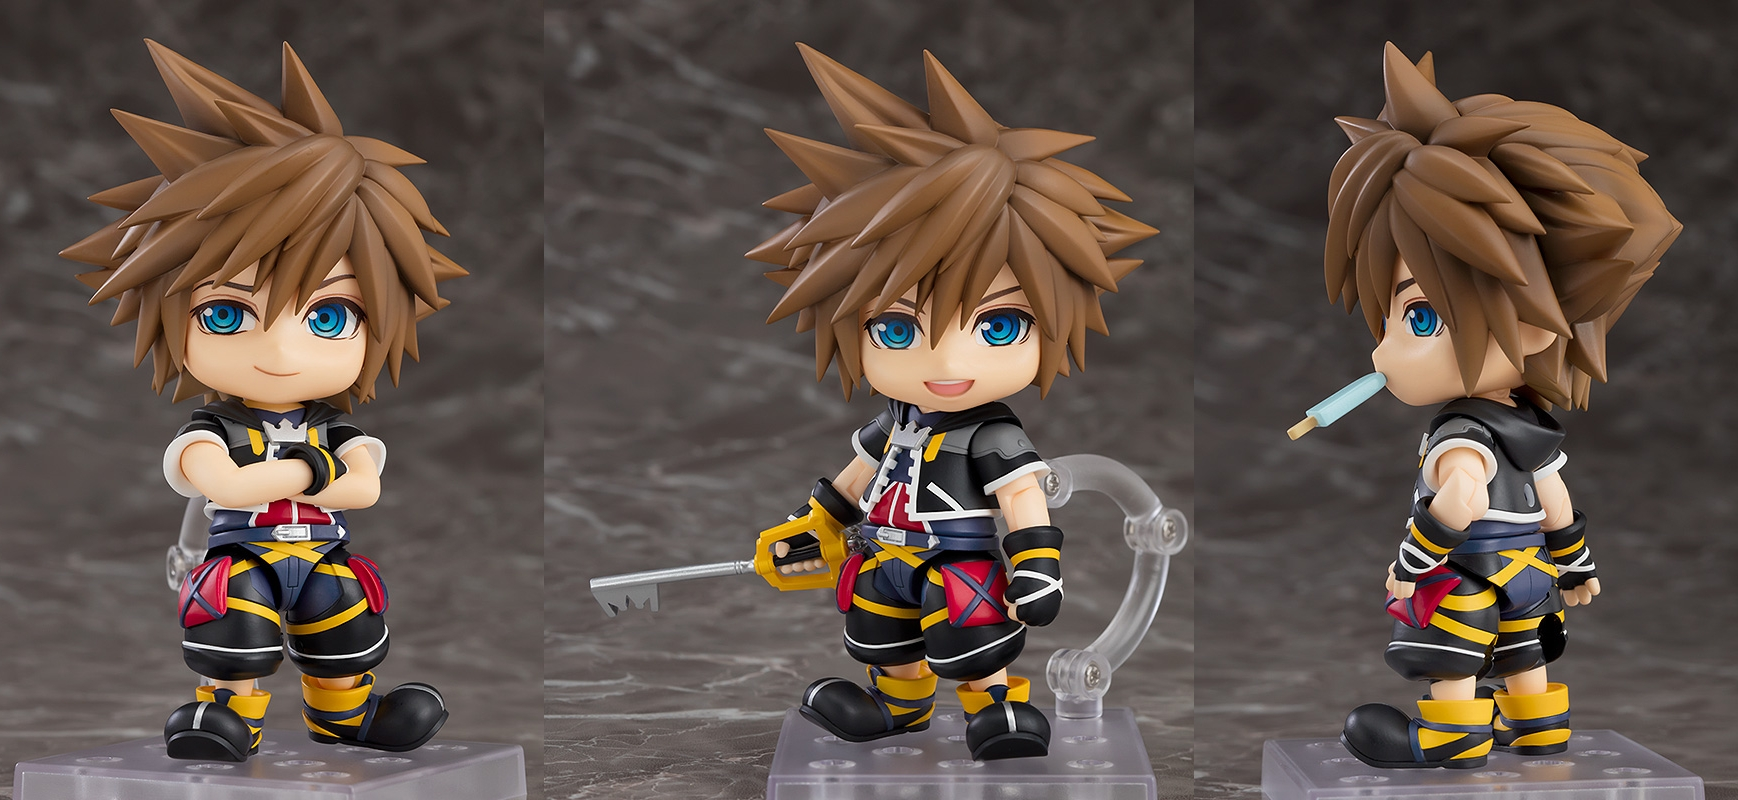 Kingdom Hearts 2 Sora Nendoroid Announced From Good Smile Company